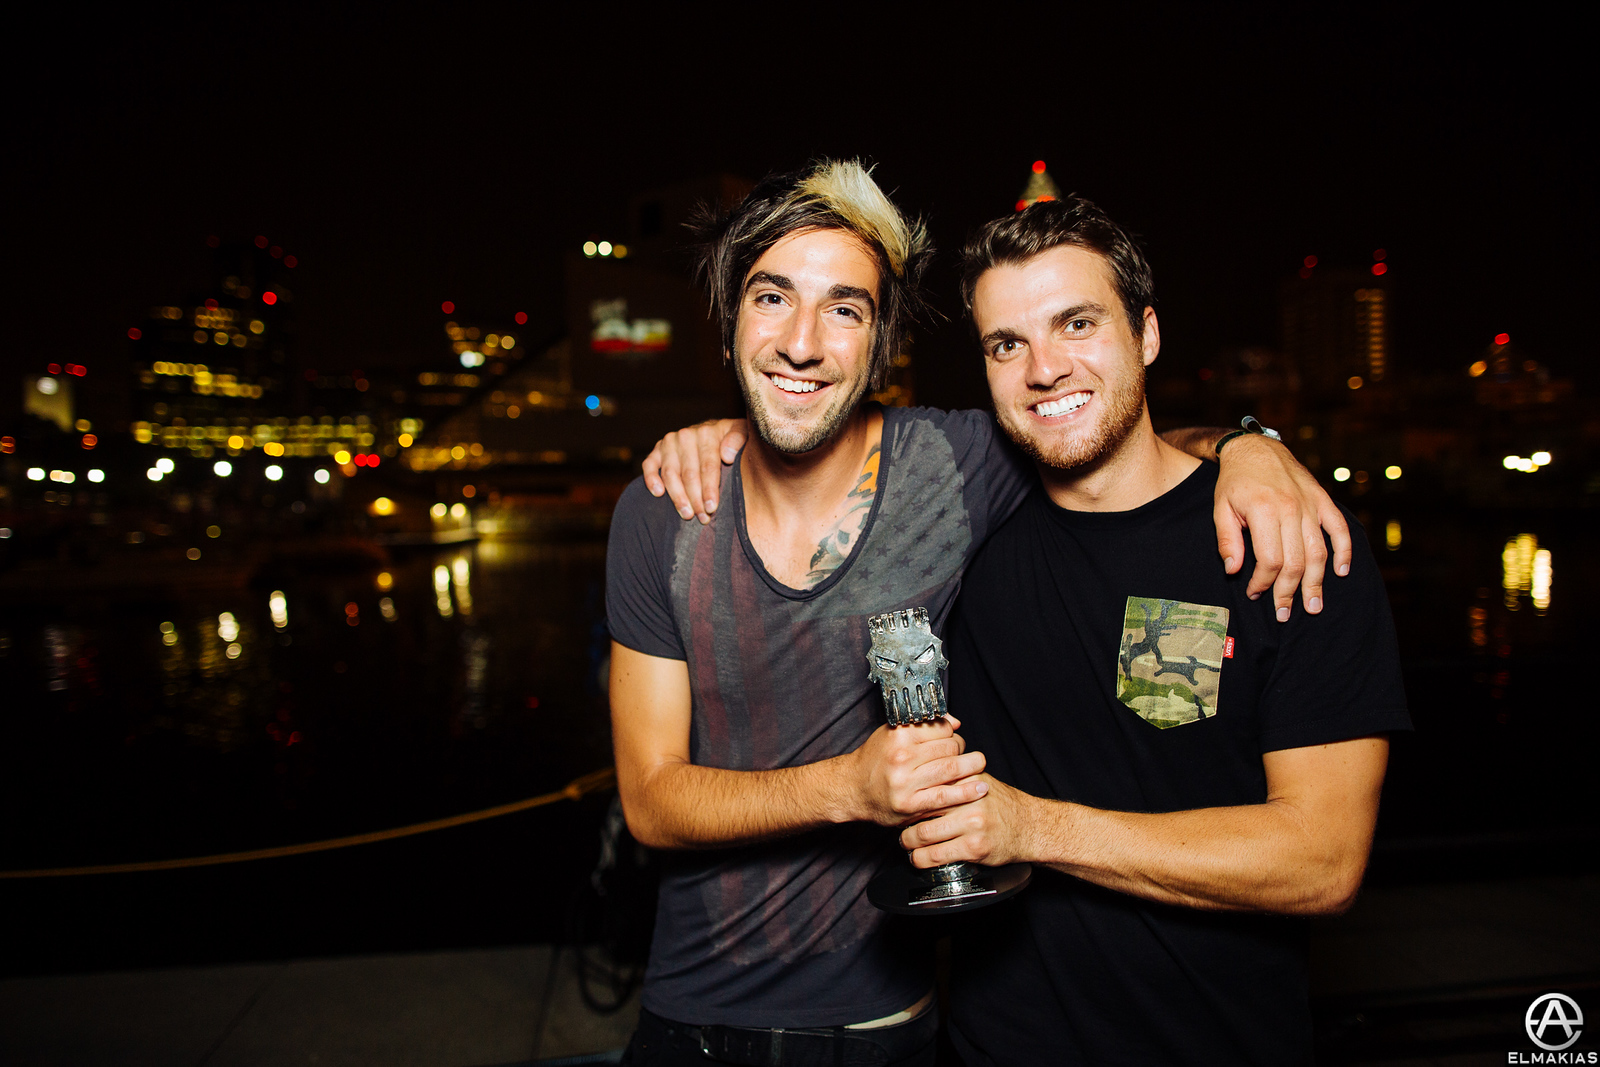 Rian and Jack stoked on life